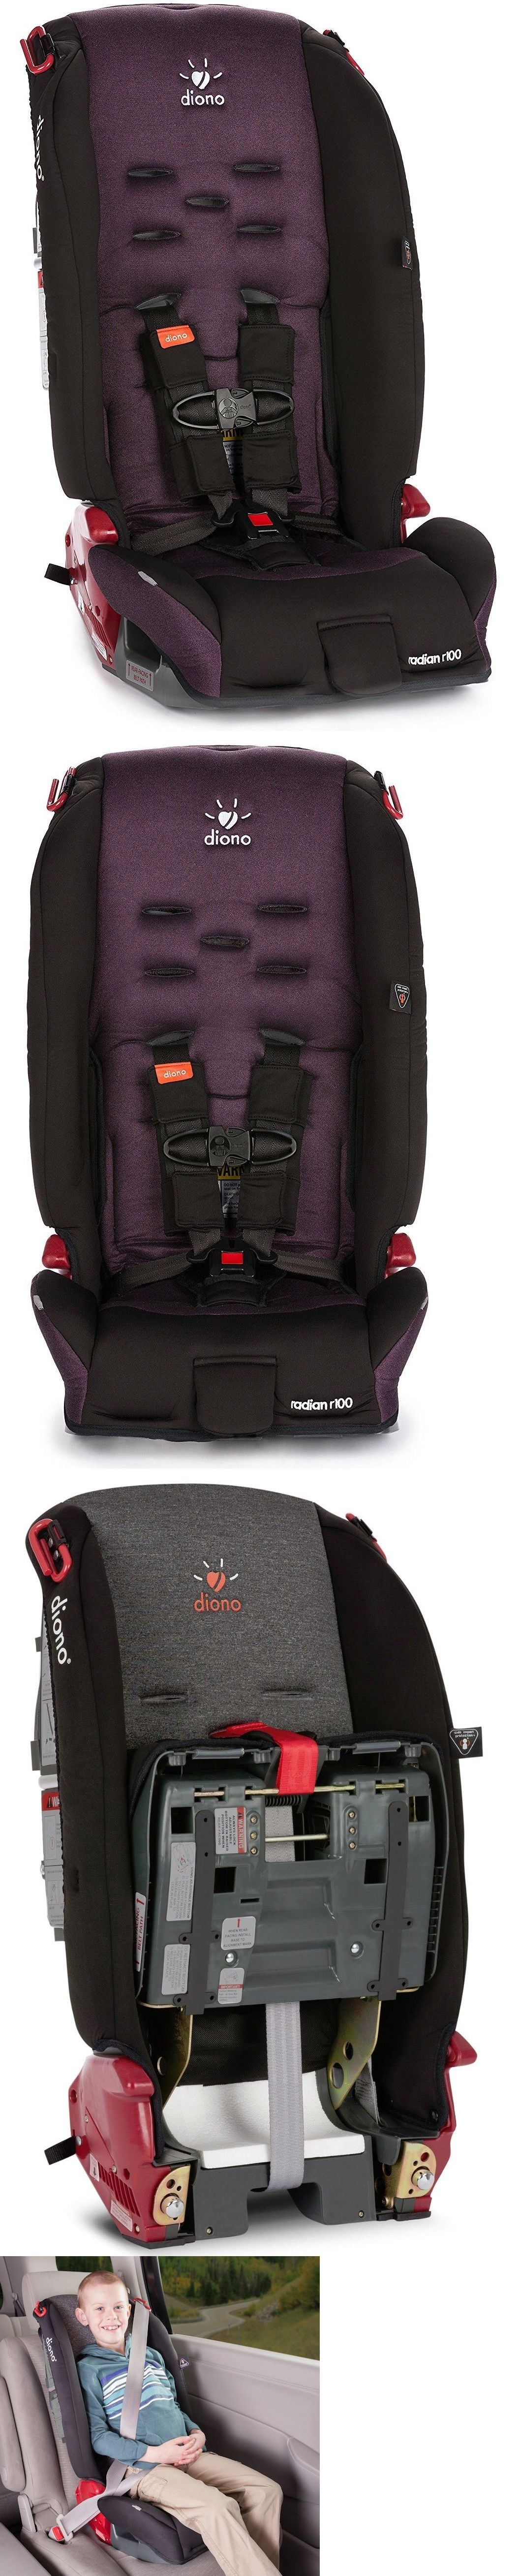 Diono Radian R100 Convertible Booster Folding Child Safety Car Seat Black Plum